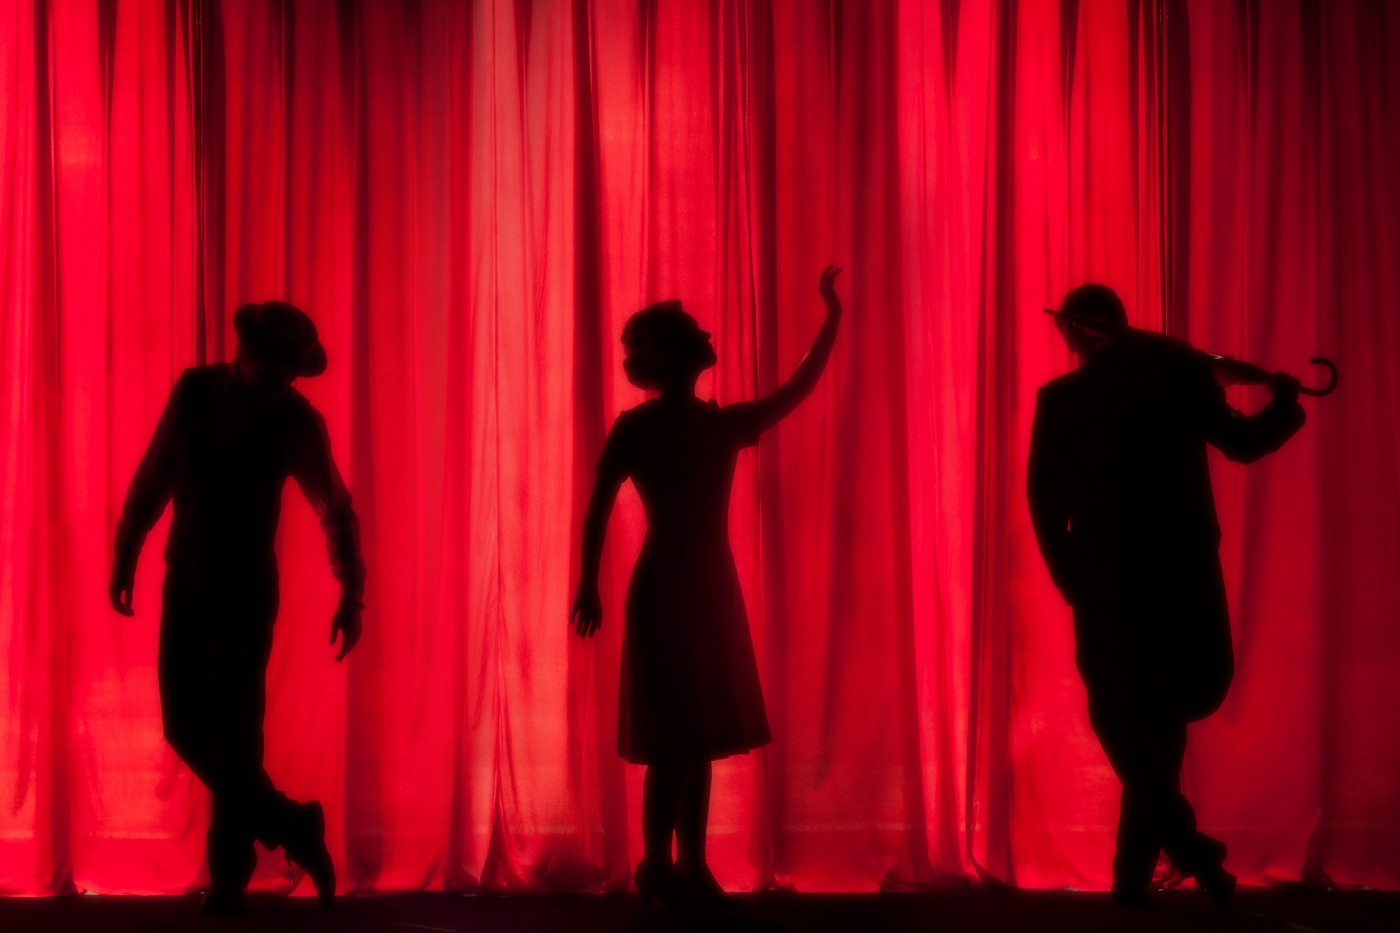 Three performers silhouetted against a red velvet curtain.